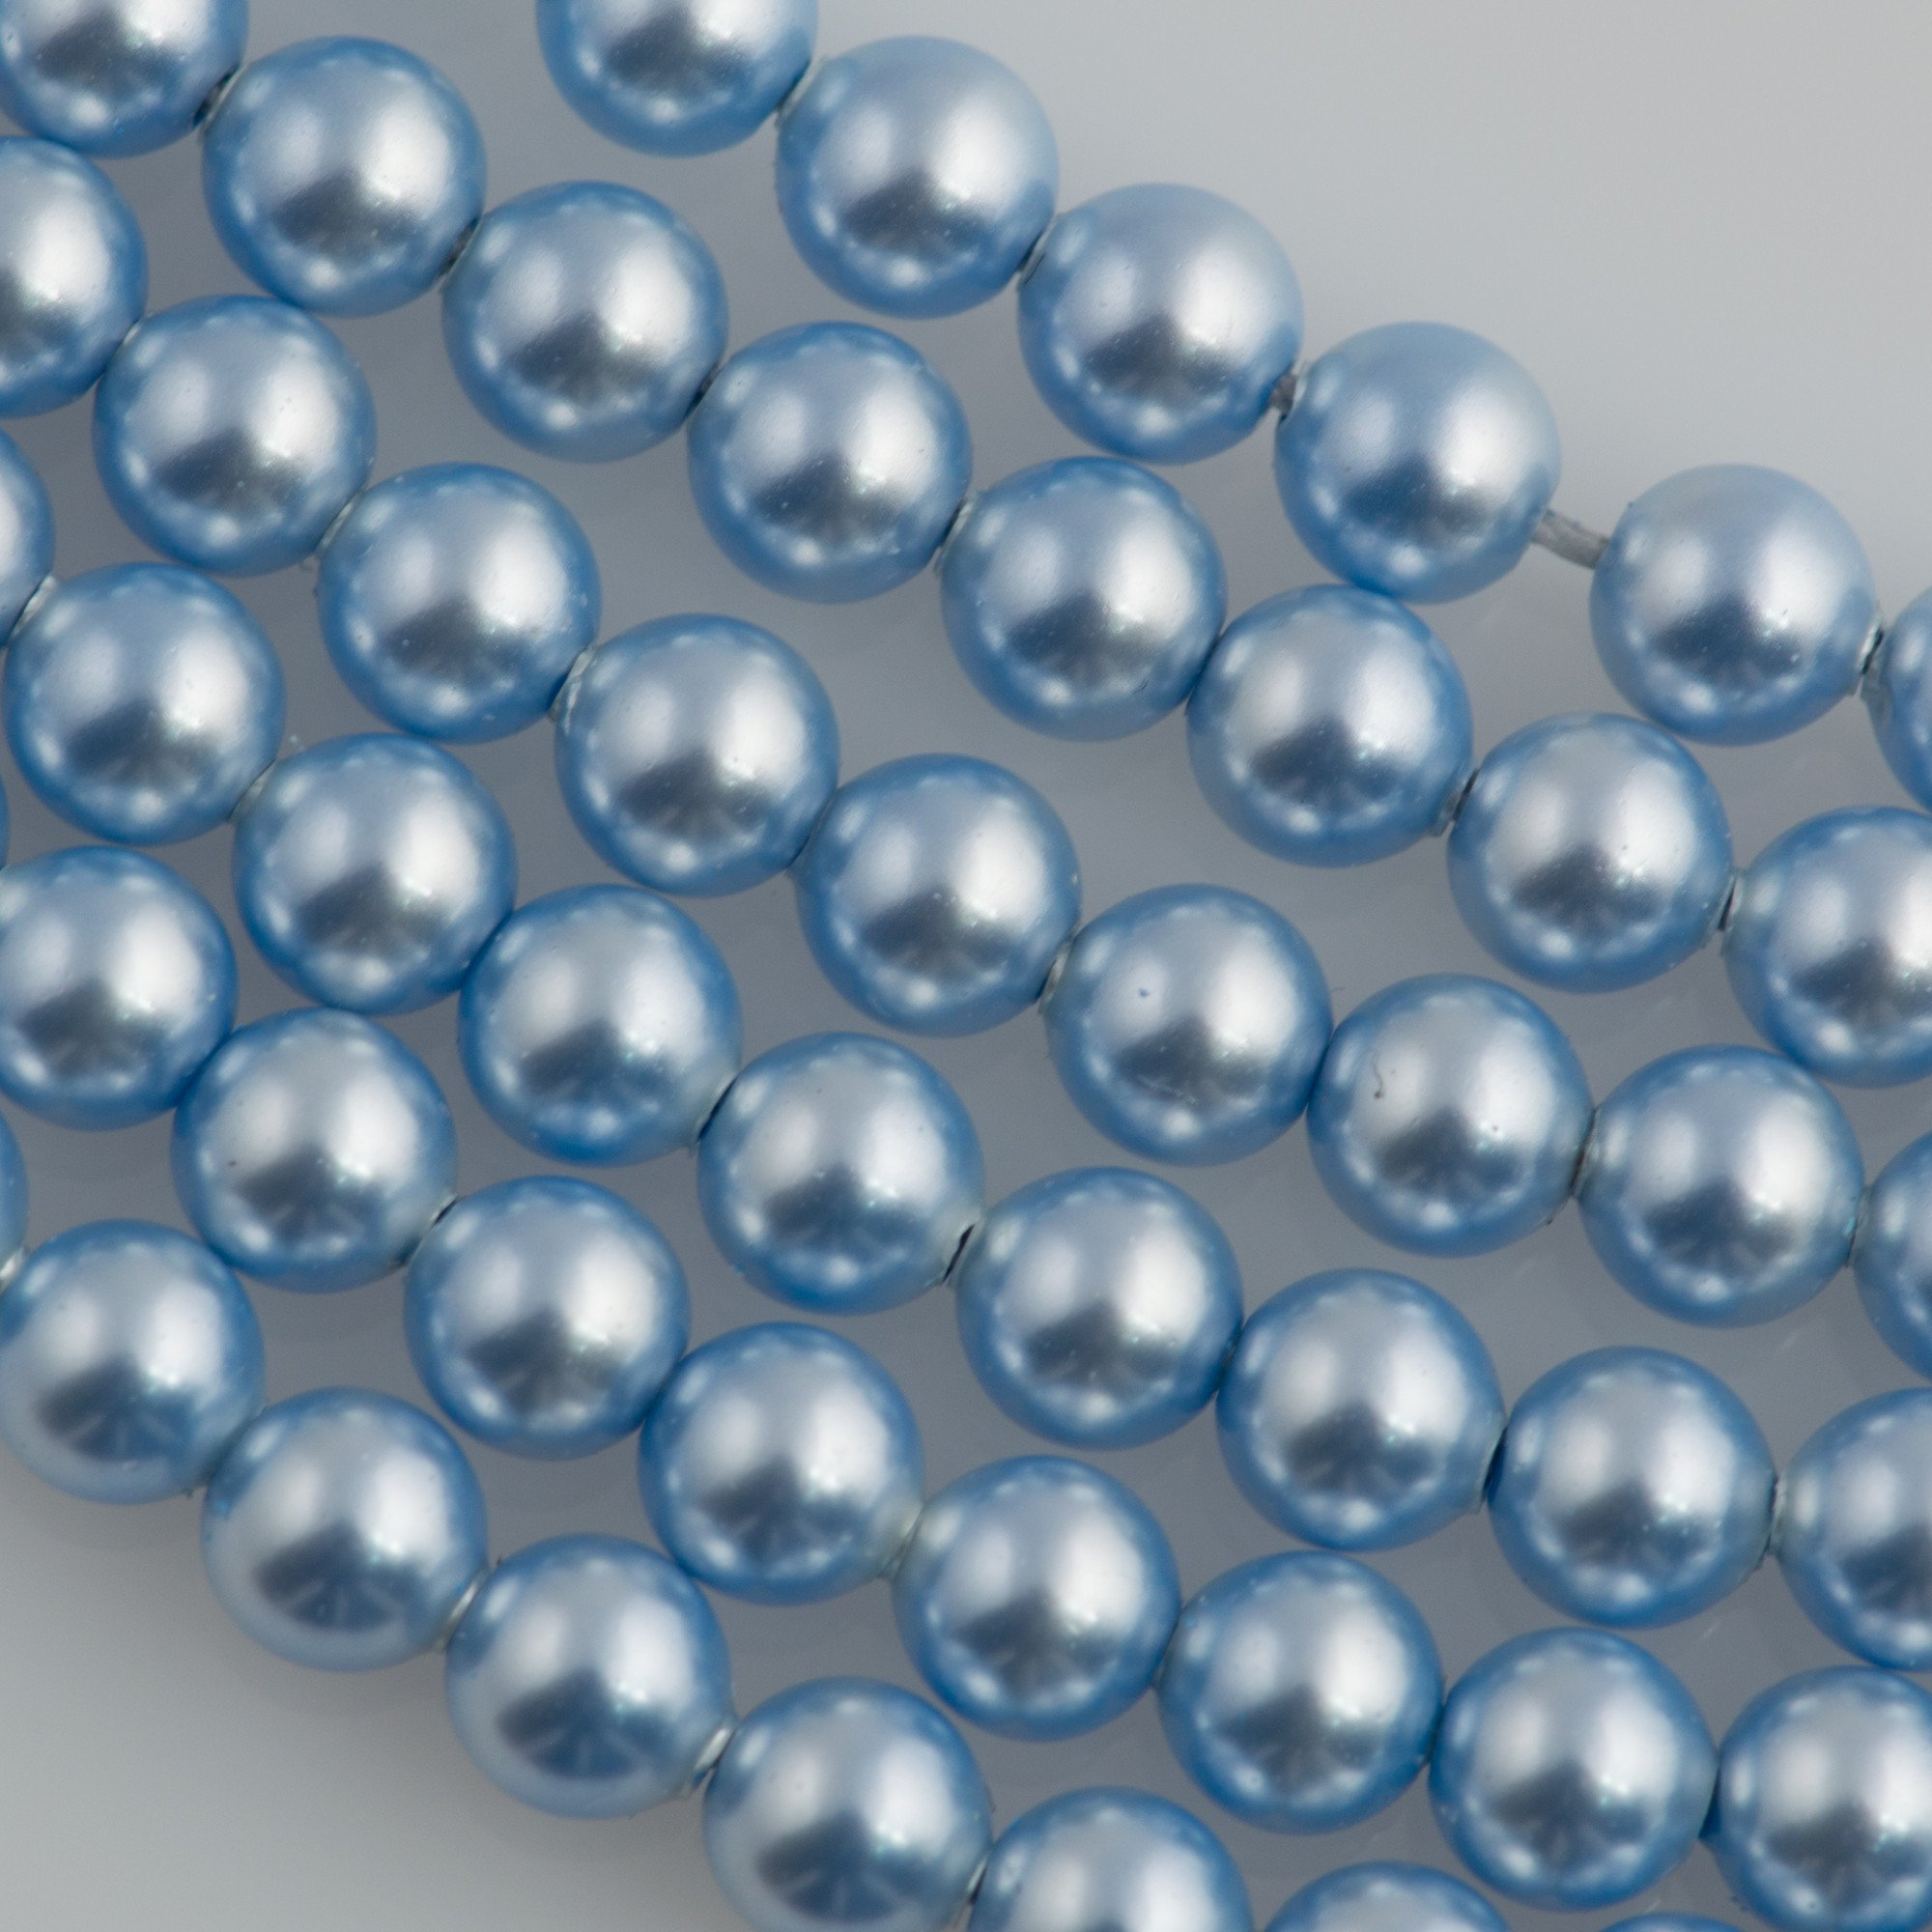 200 Swarovski 5810 3mm Round Light Blue Pearl Beads | Auracrystals